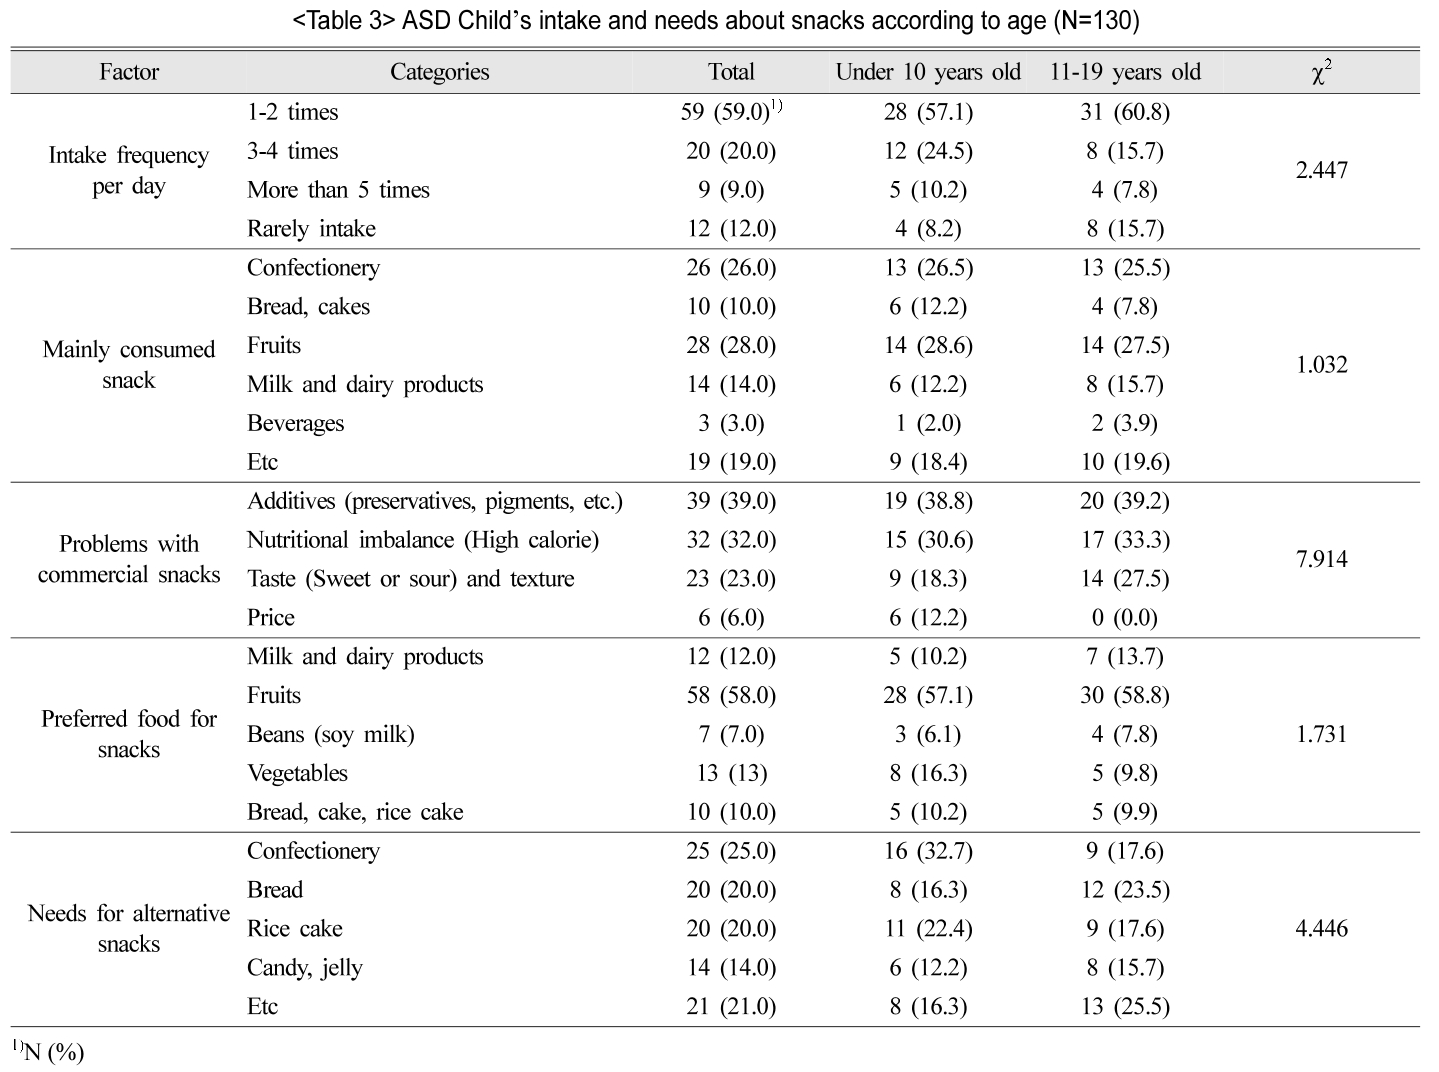 ASD Child's intake and needs about snacks according to age (N=130)